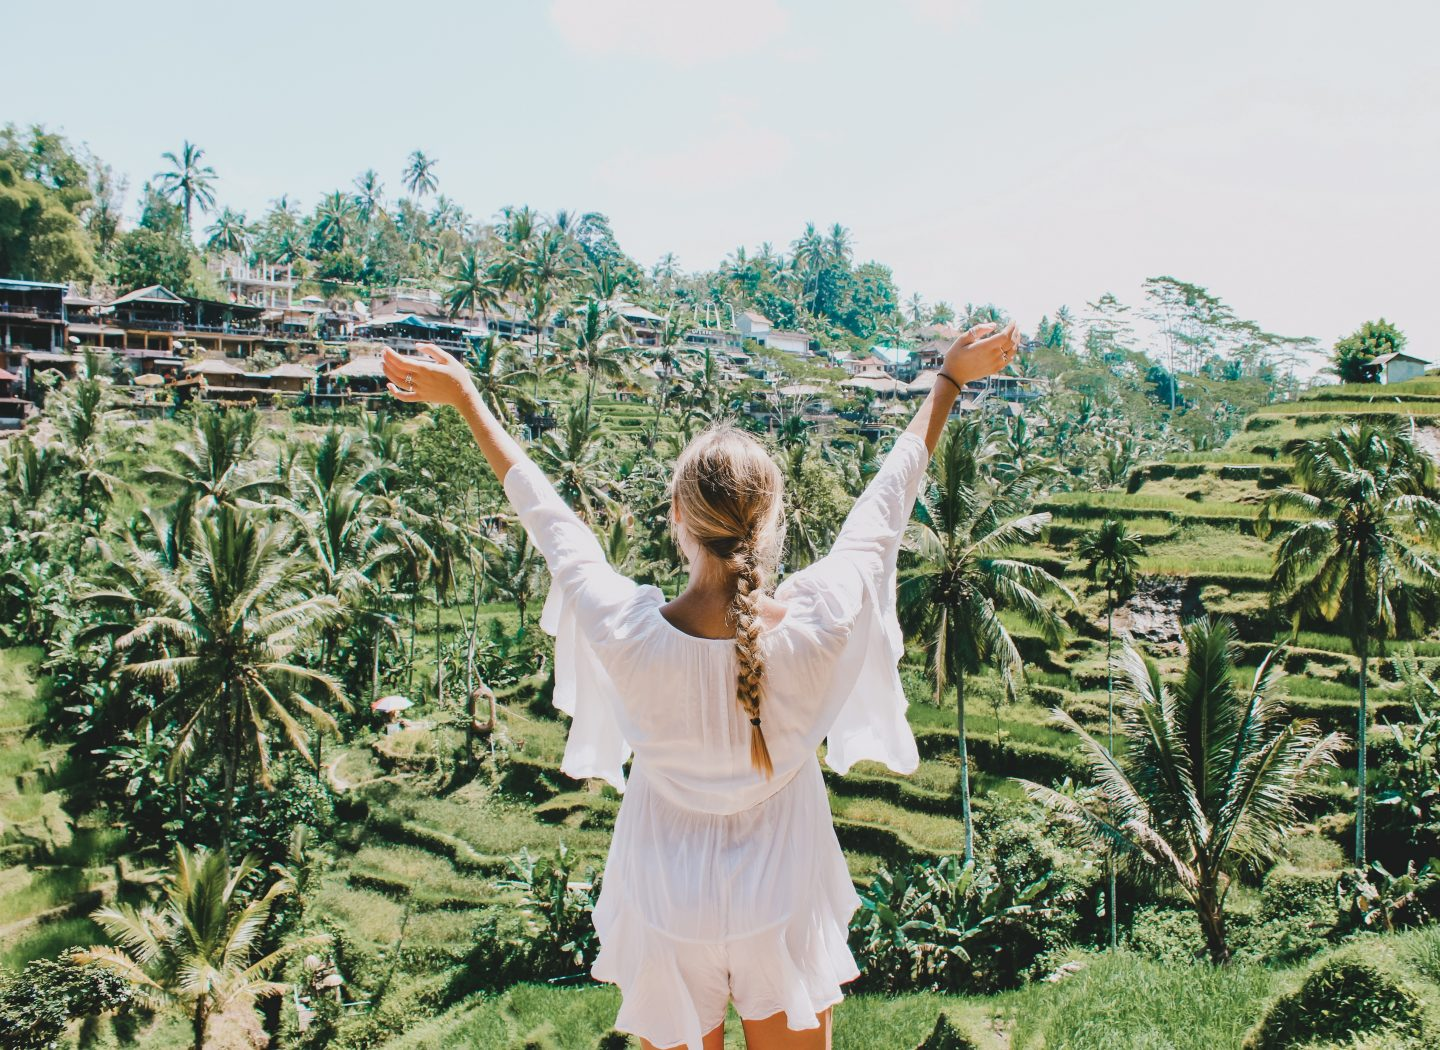 Posing overlooking the rice terraces in Ubud, Bali!